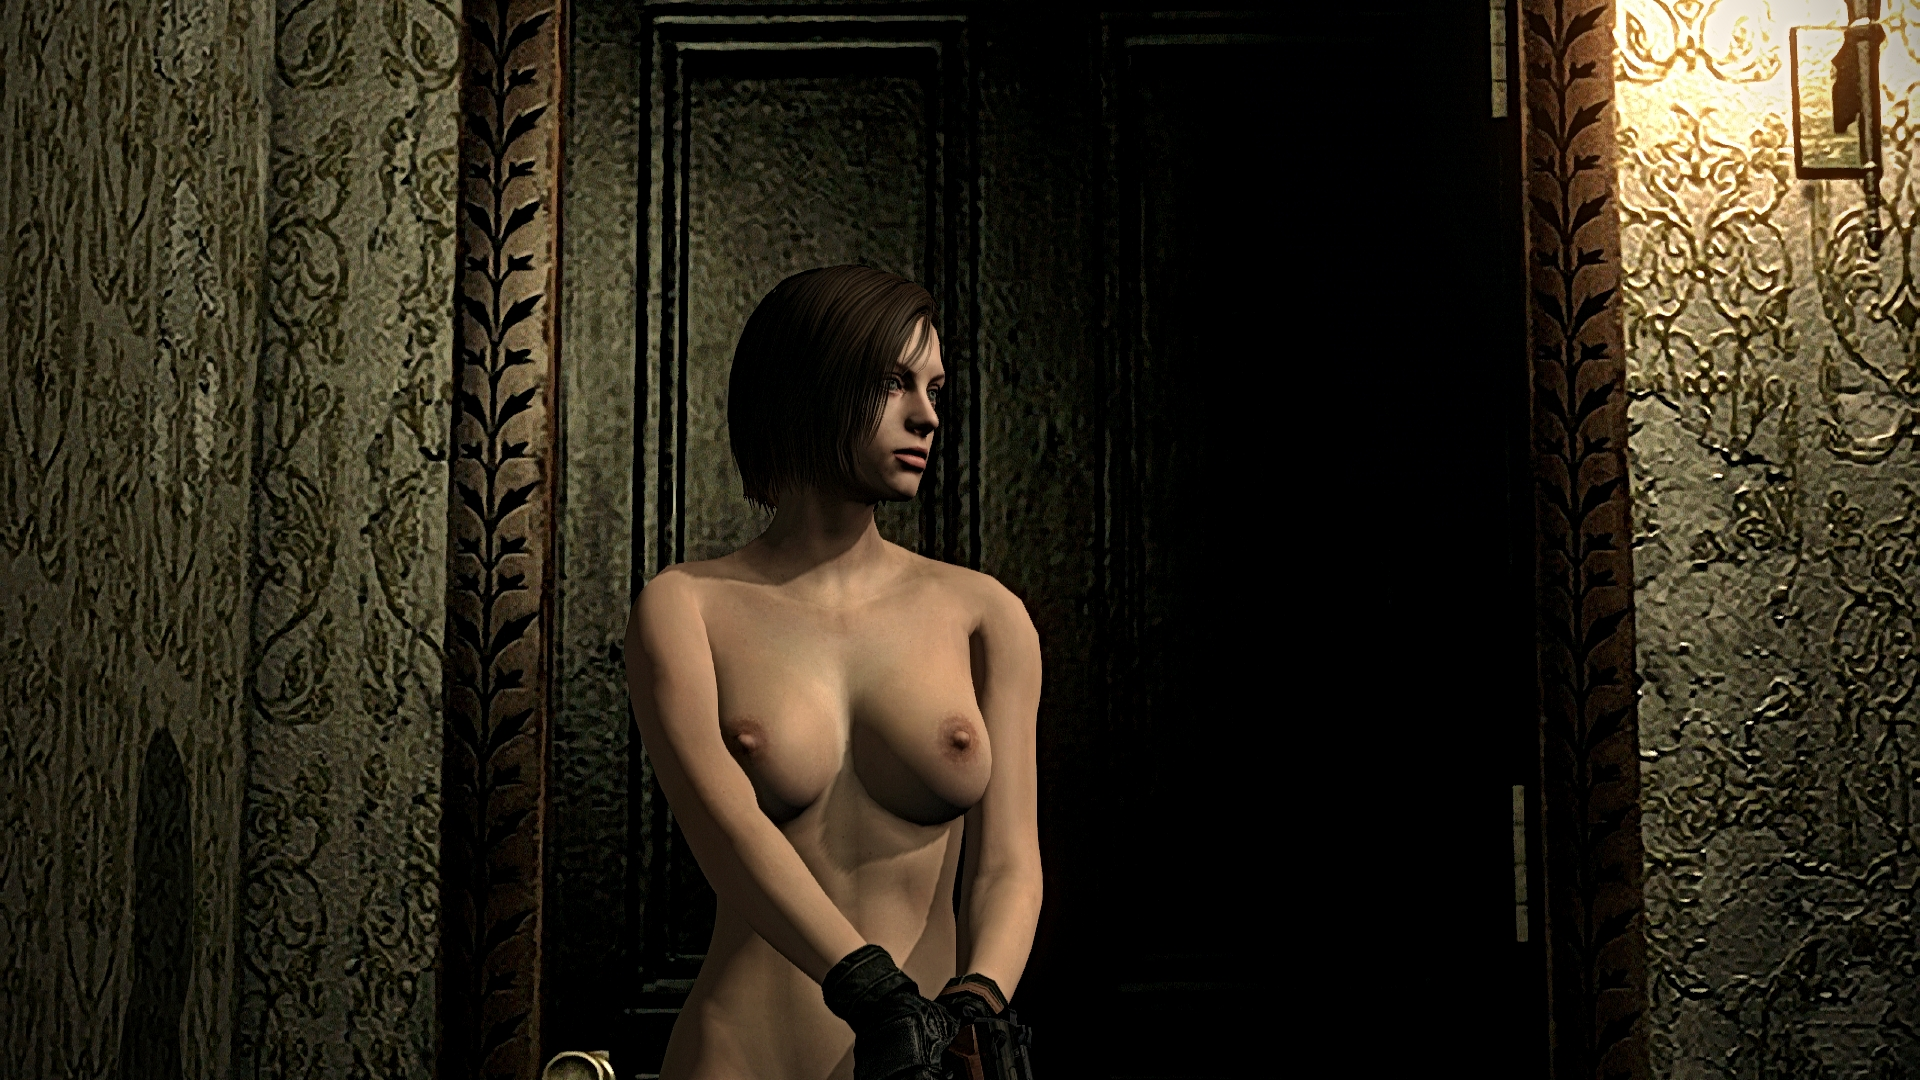 Uncharted nude mod erotic picture